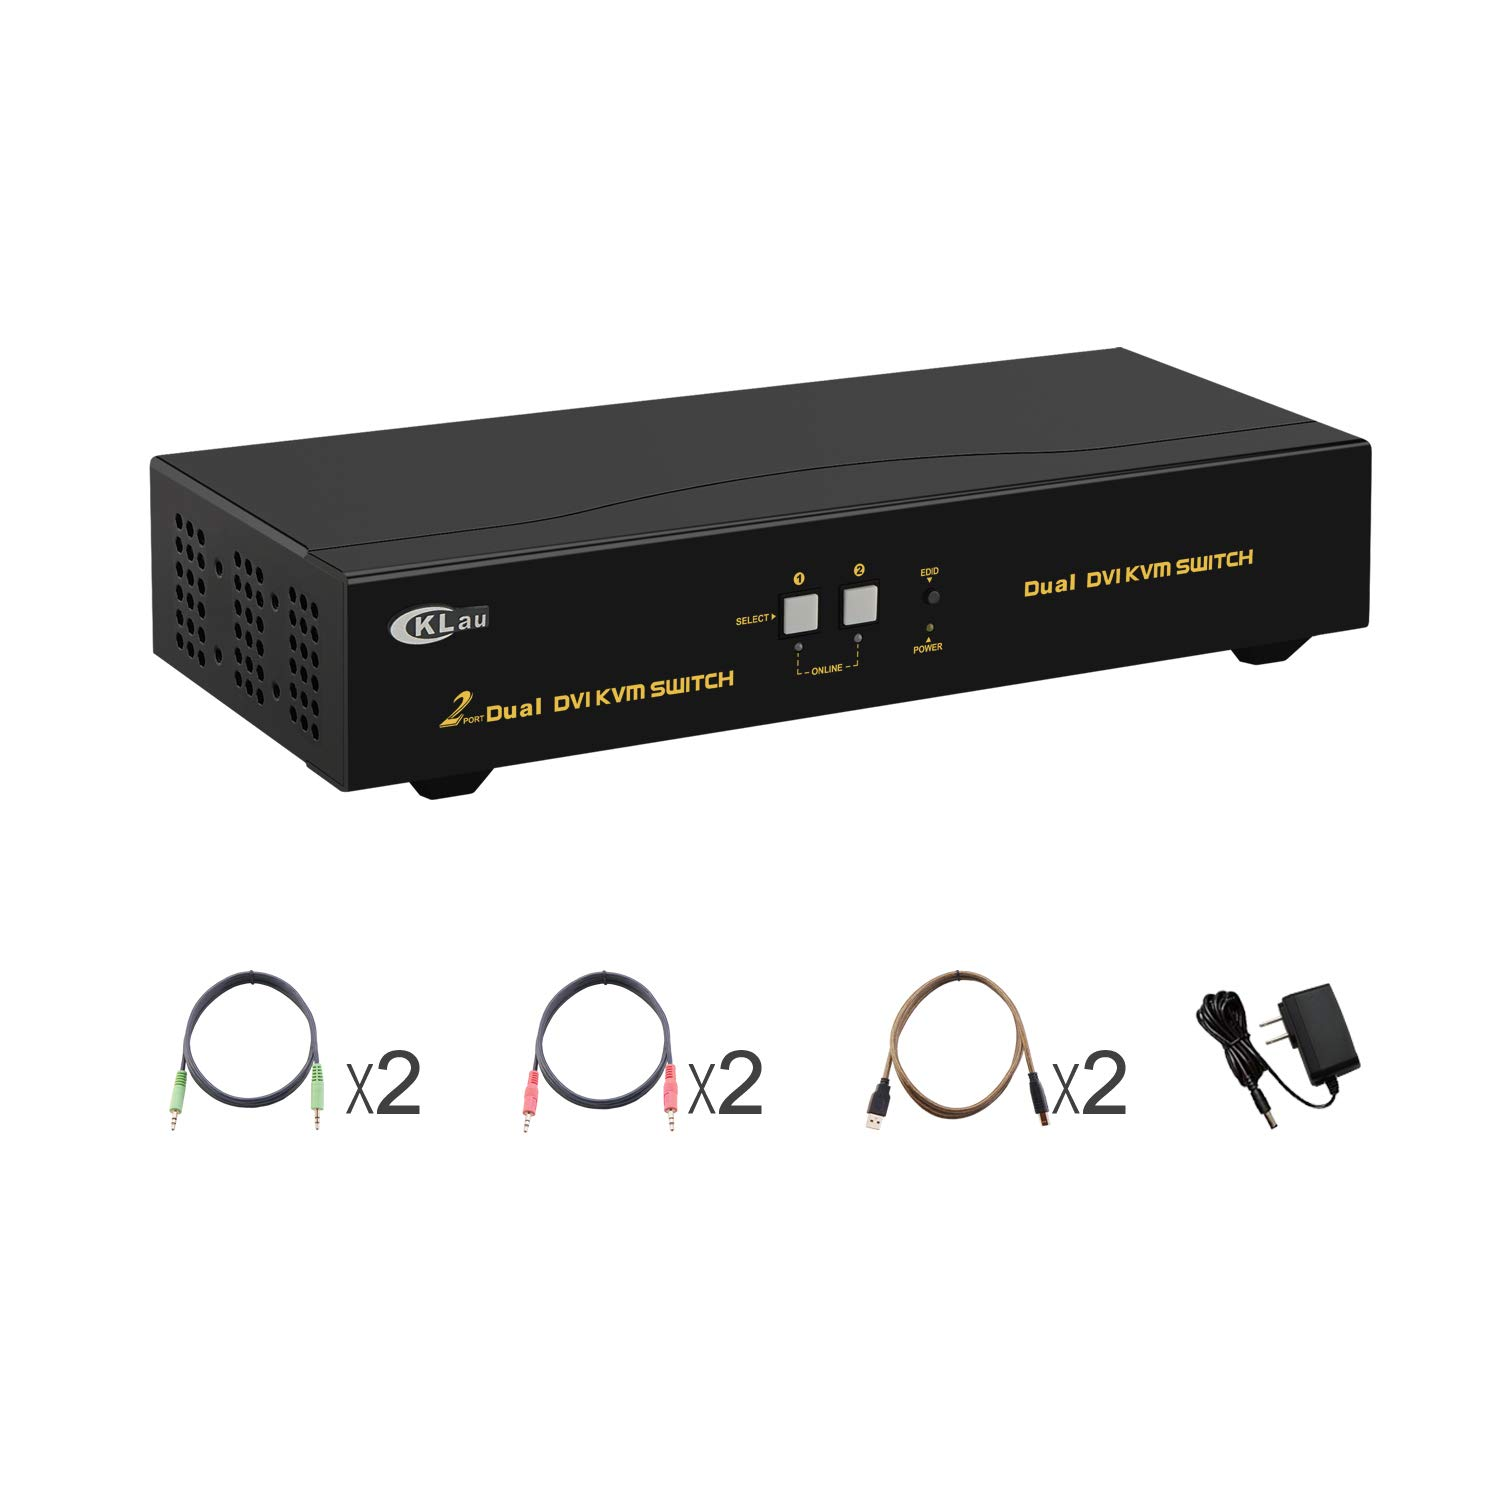 CKLau 2 Port KVM Switch DVI Dual Monitor Extended Display with Audio and Microphone, USB 2.0 Hub